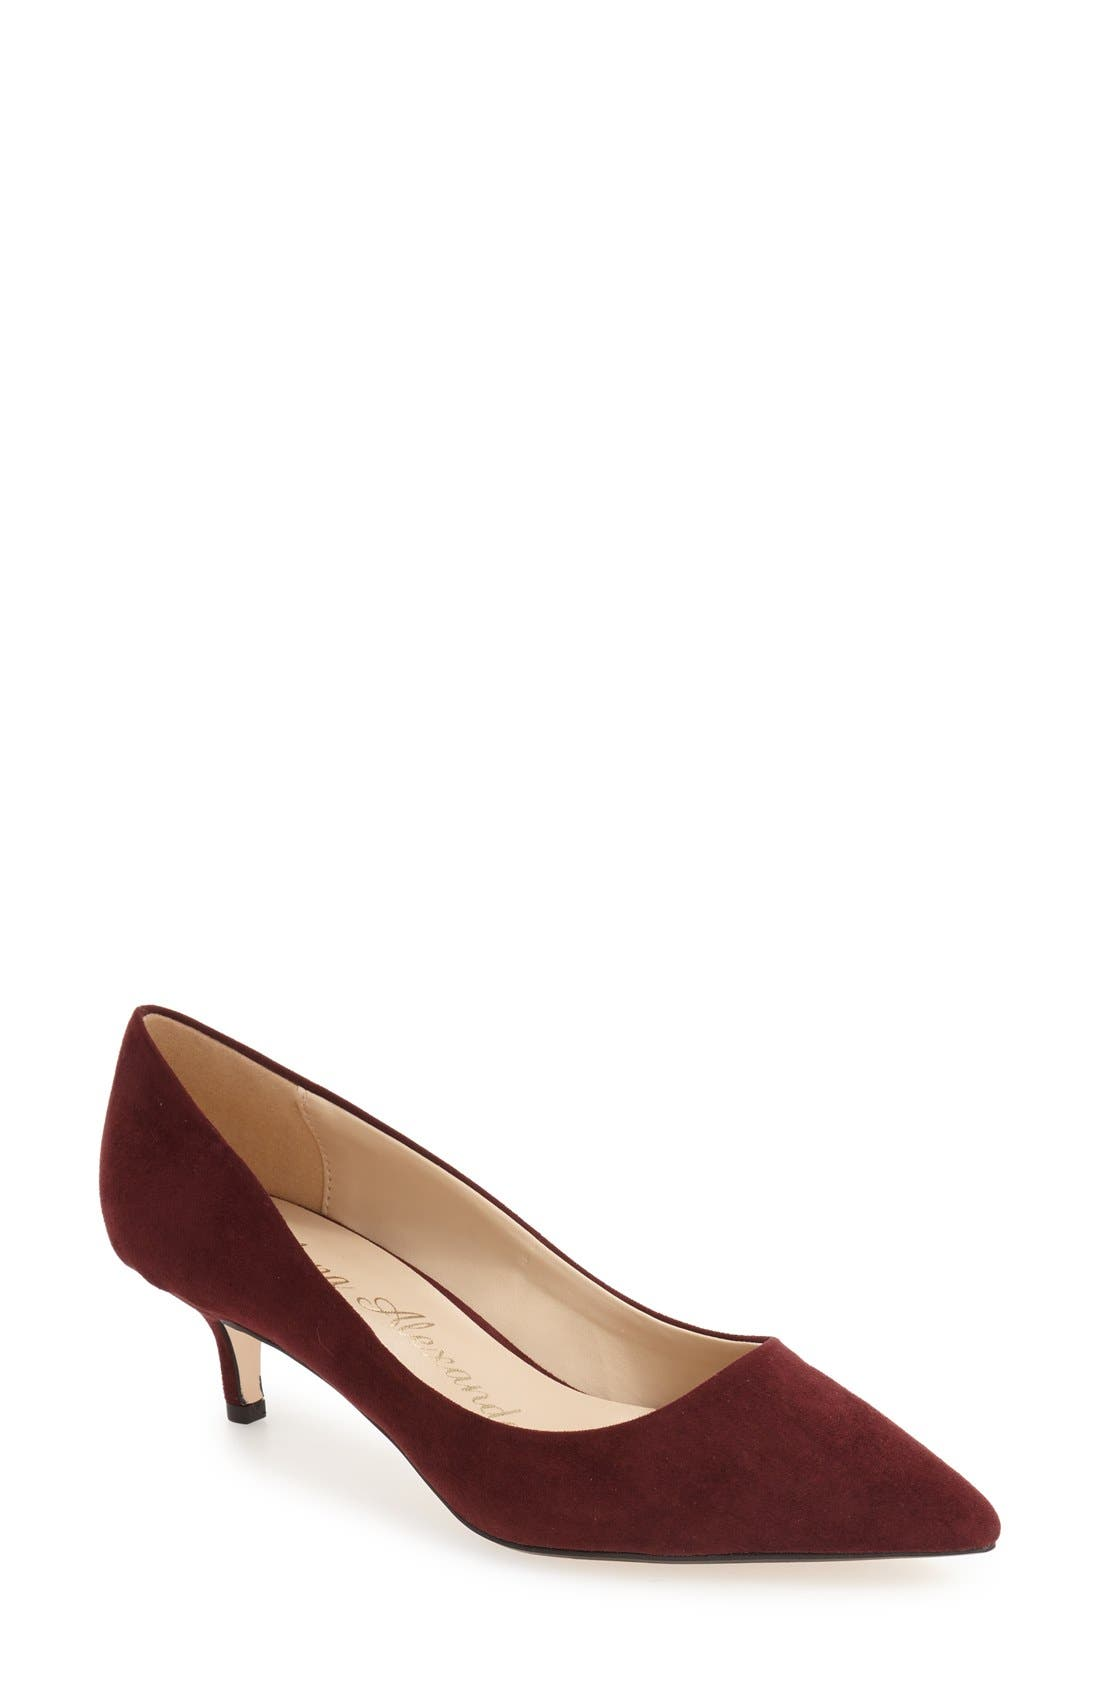 Athena Alexander 'Teague' Pointy Toe Pump (Women)